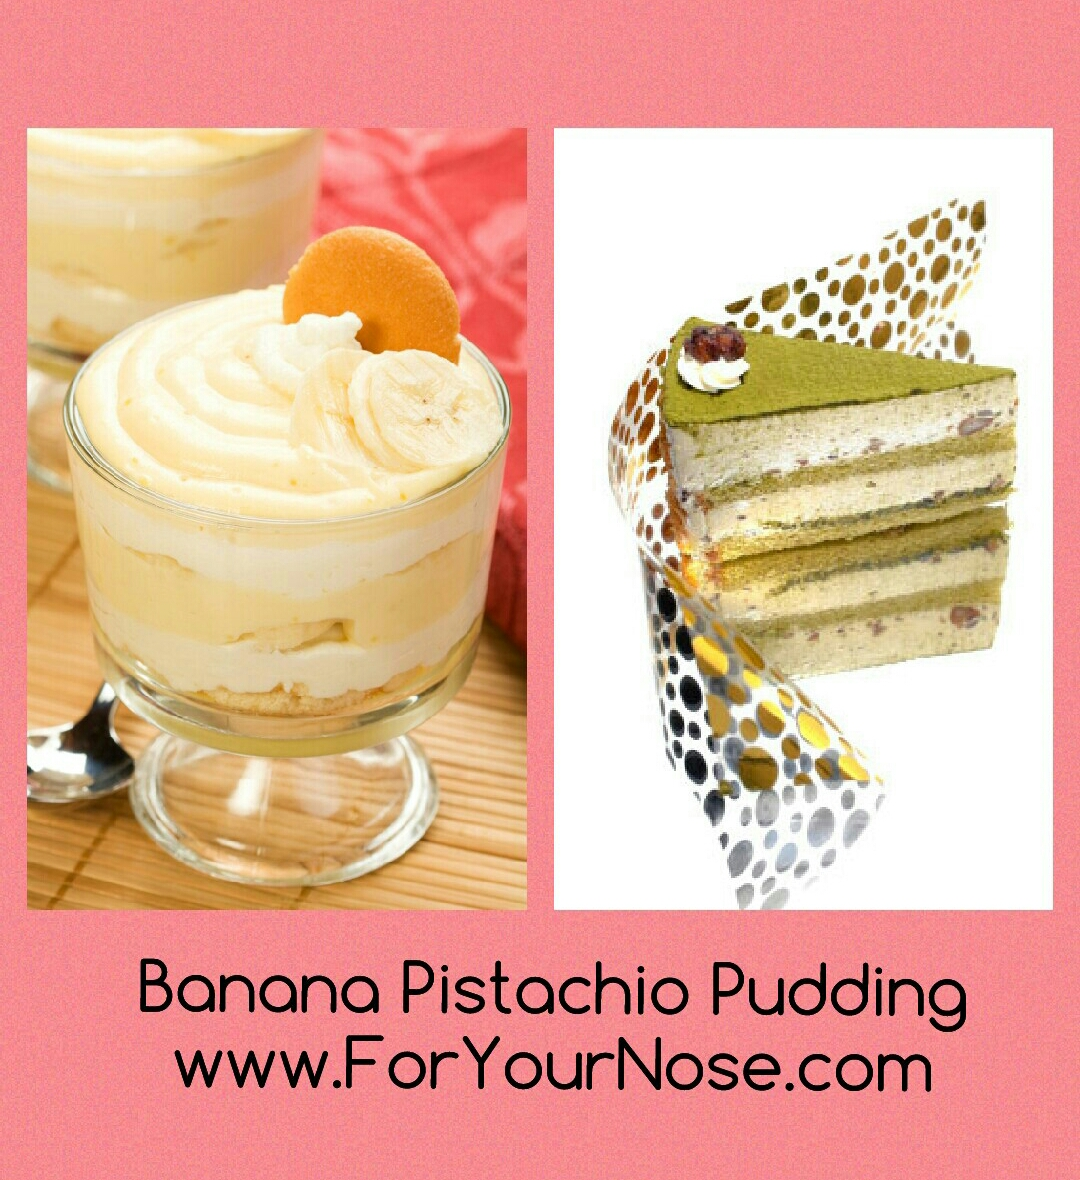 Banana Pistachio Pudding fragrance